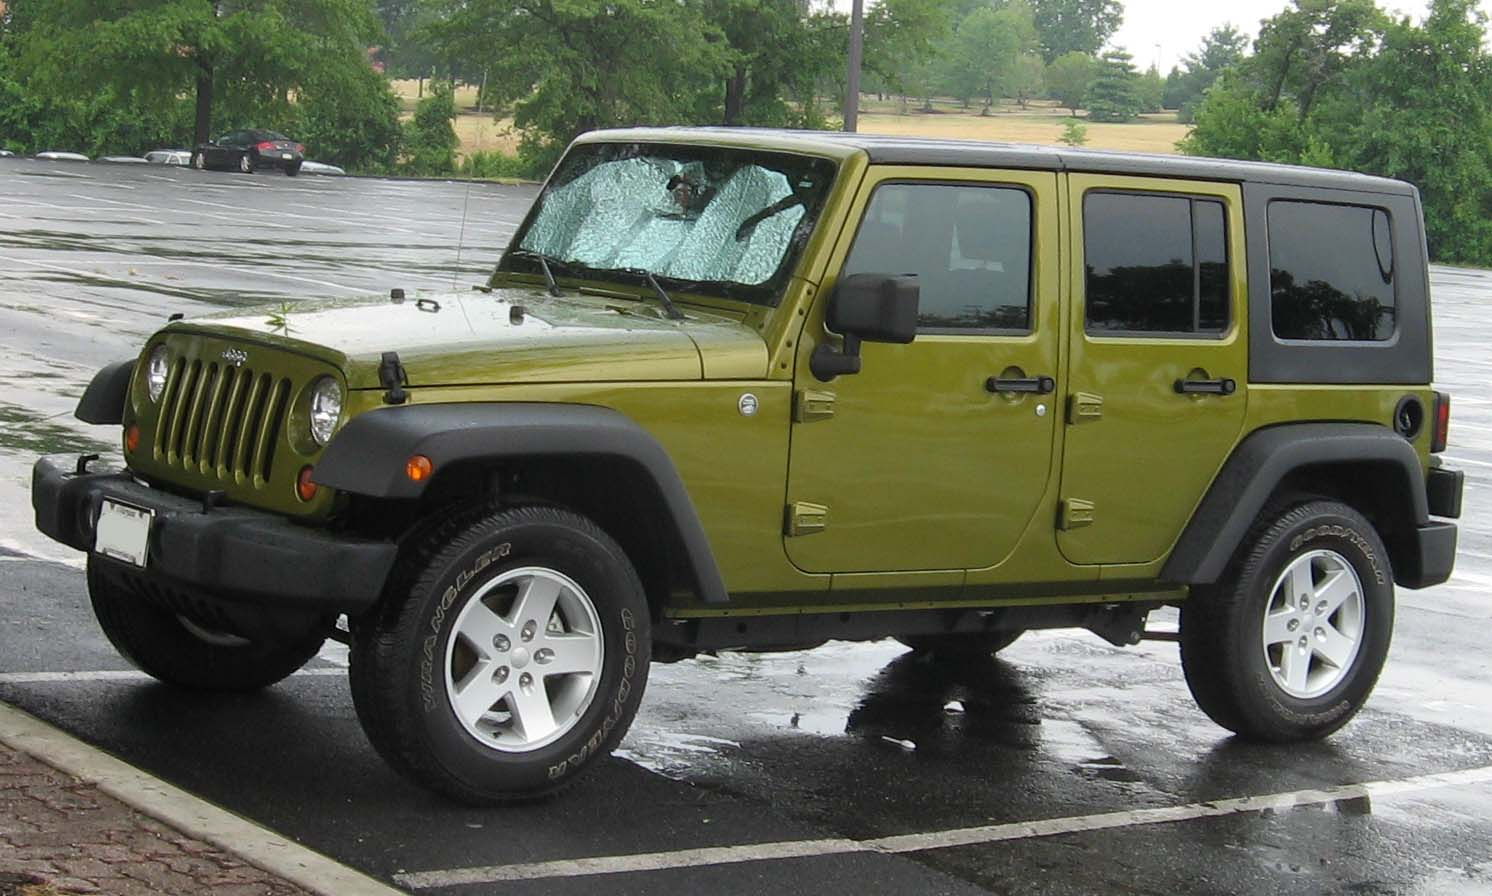 2007 Jeep Wrangler Unlimited Wallpaper For Free